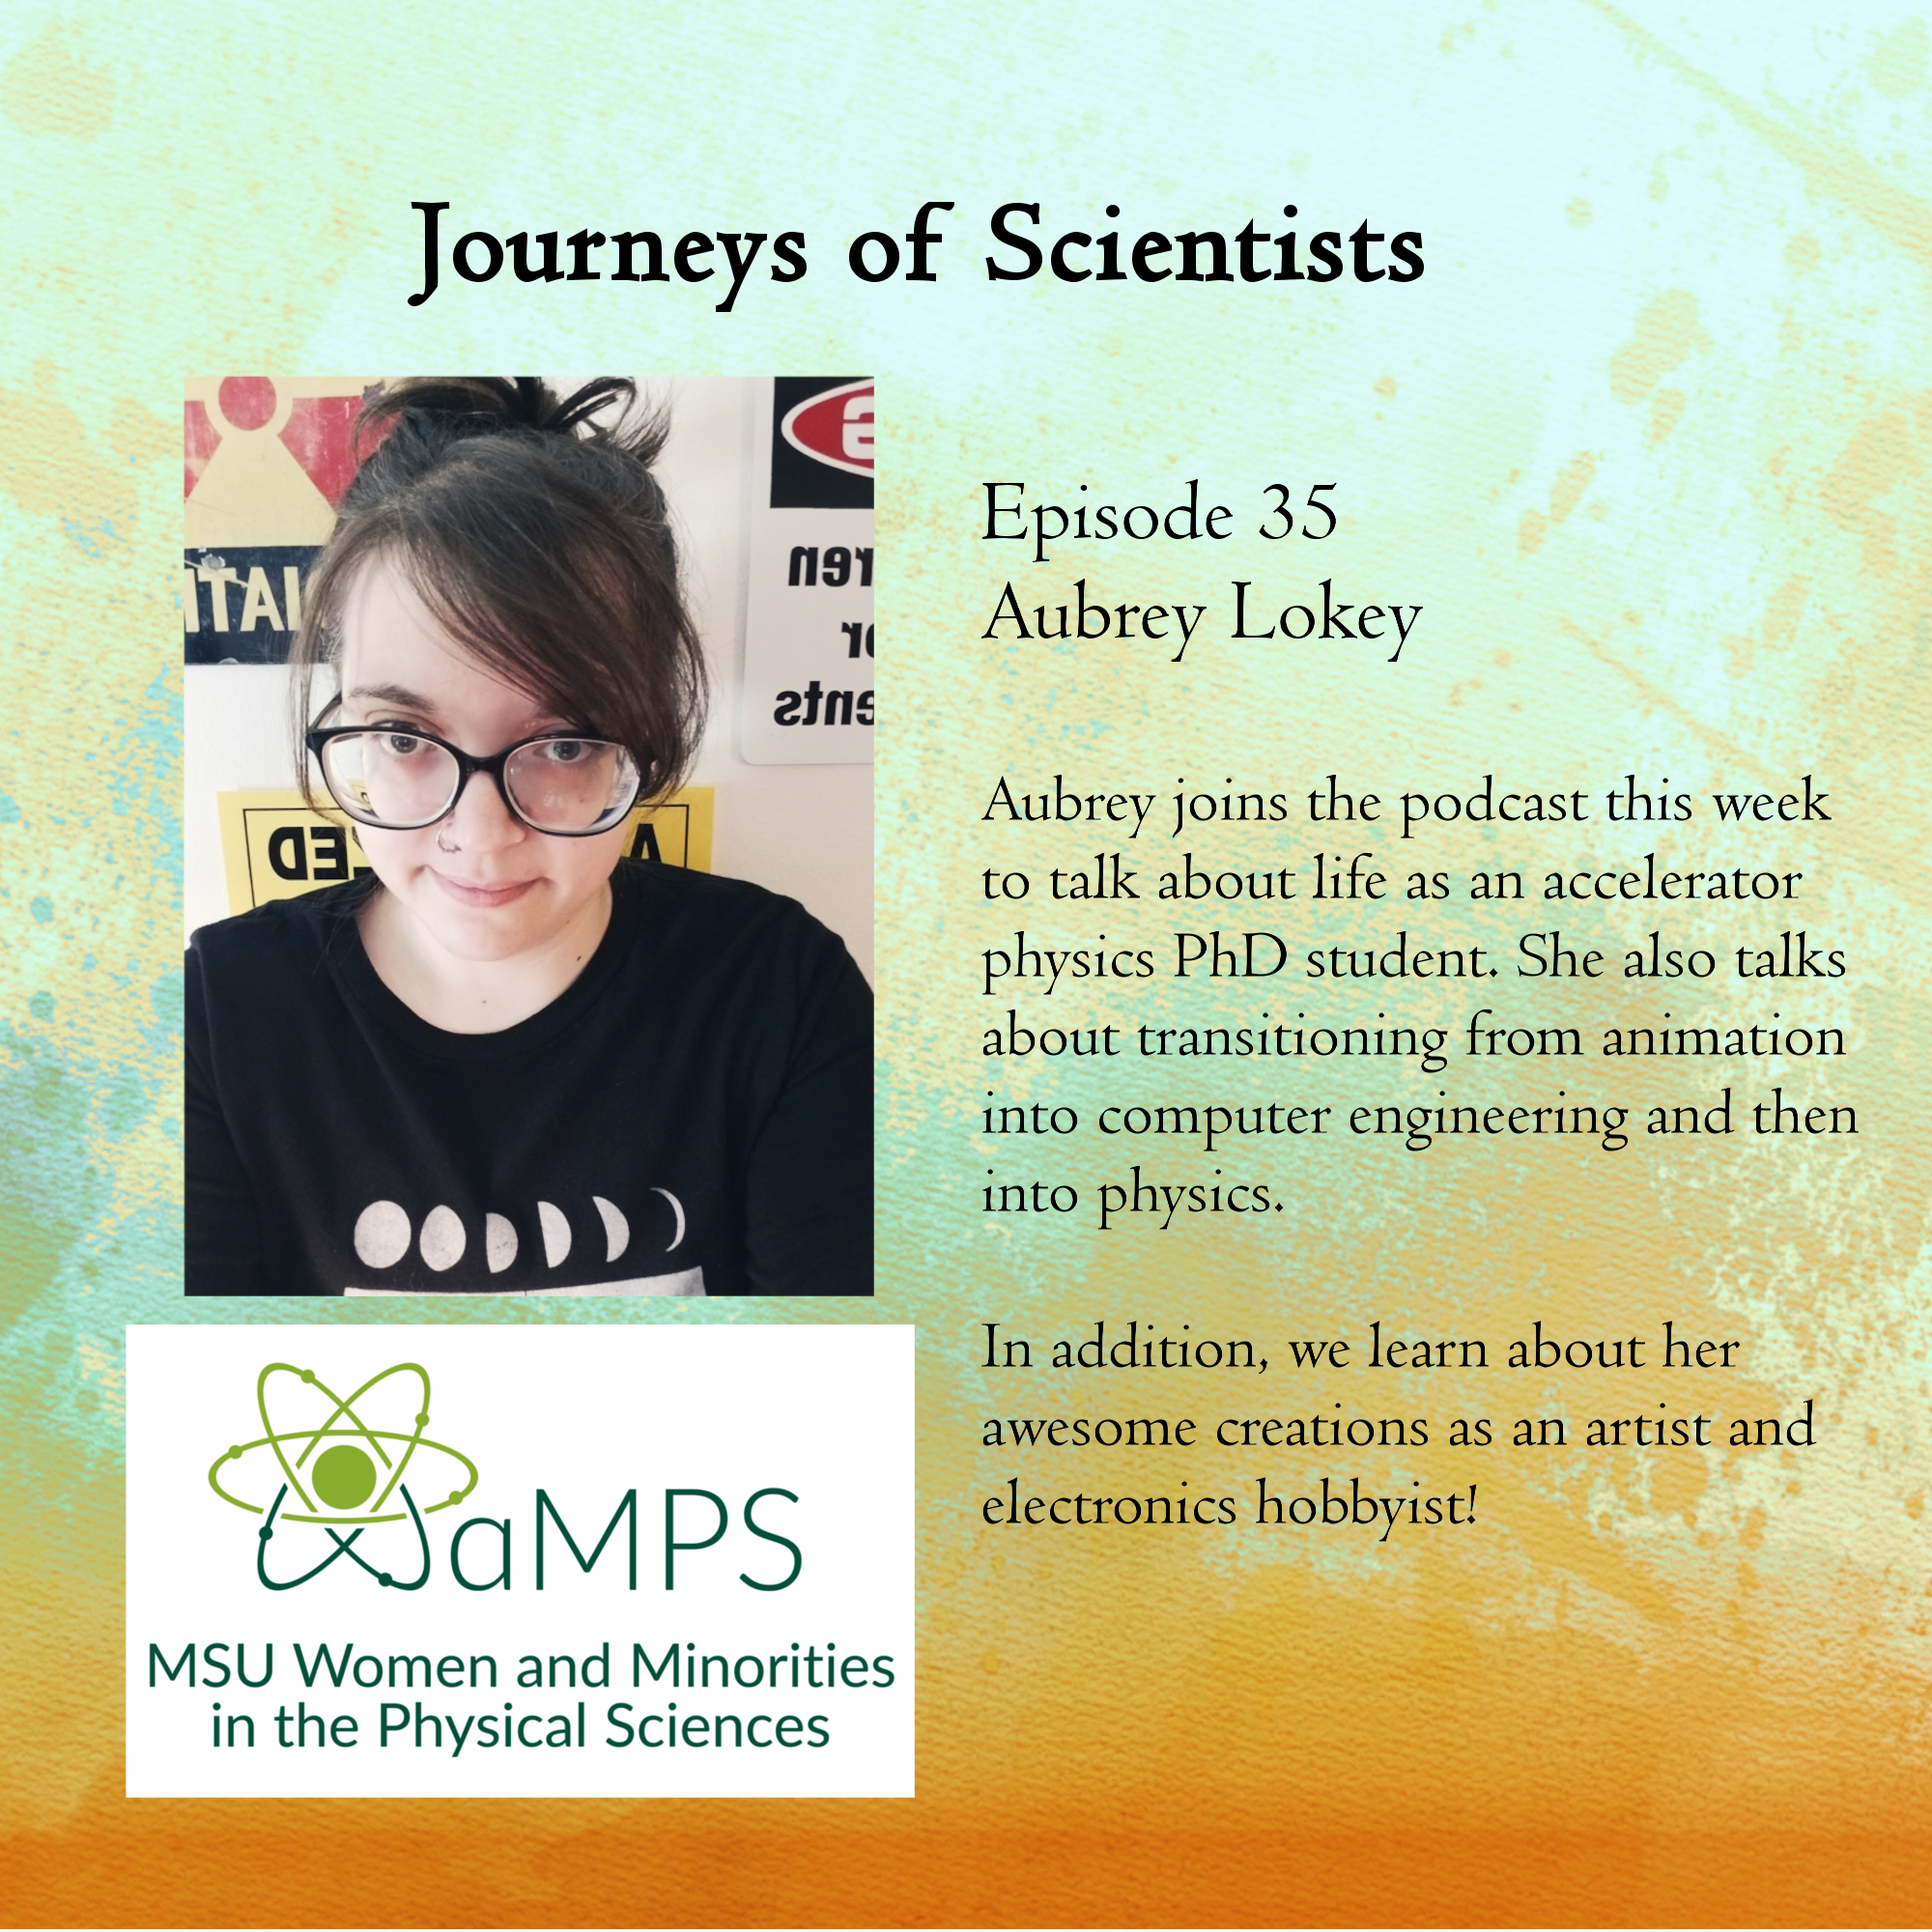 Aubrey is an accelerator physics PhD student studying beam diagnostics and instrumentation. Outside of research, she is an artist and electronics hobbyist.